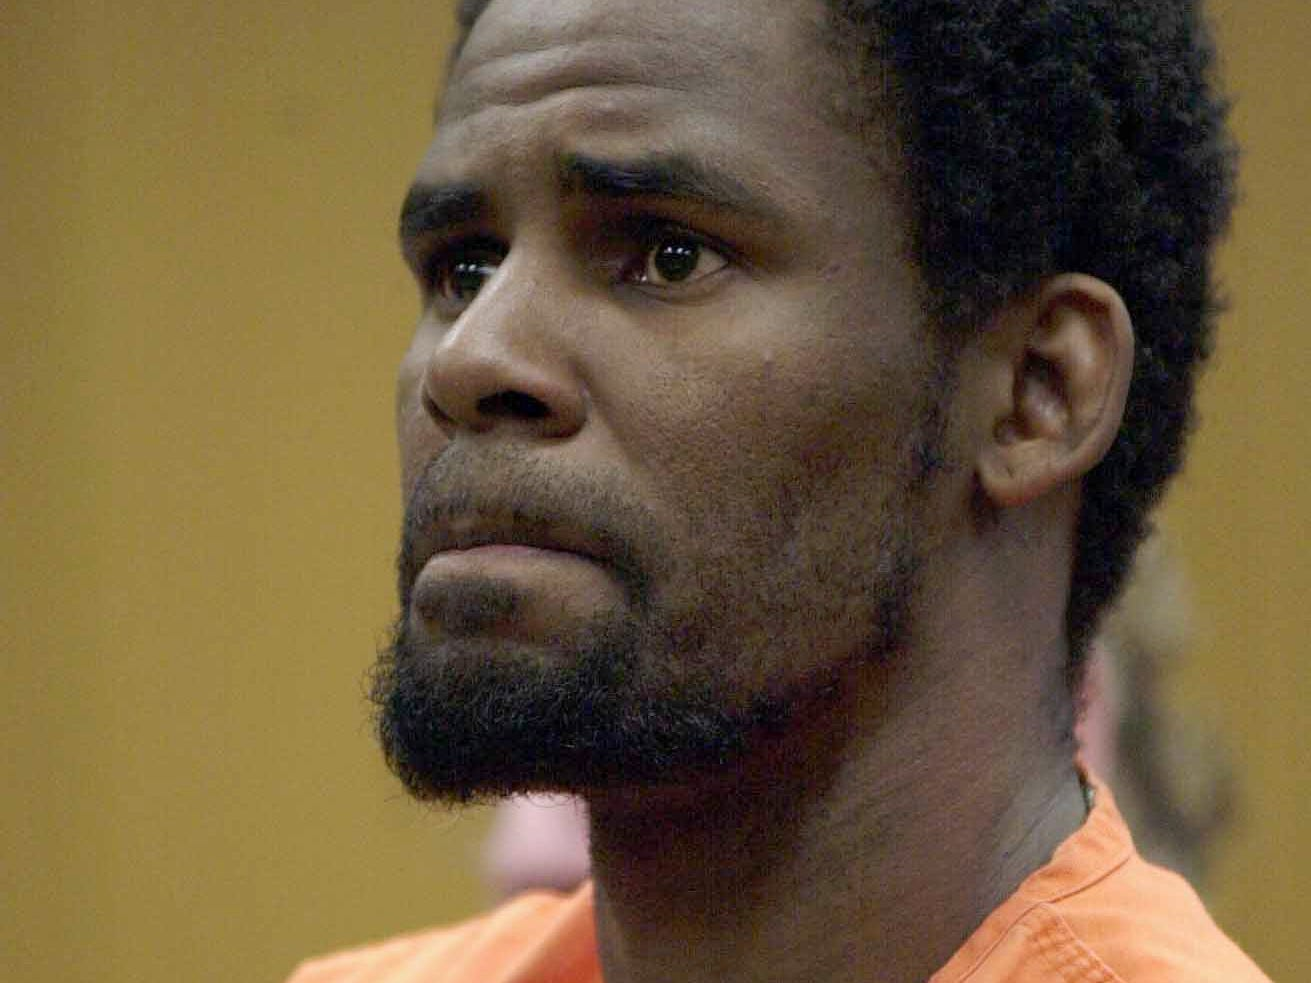 R. Kelly looks at Polk County Judge Karla Wright during his court appearance on June 6, 2002, in Bartow, Fla.  Kelly was arrested in Davenport, Fla., and charged with 21 counts of child pornography.